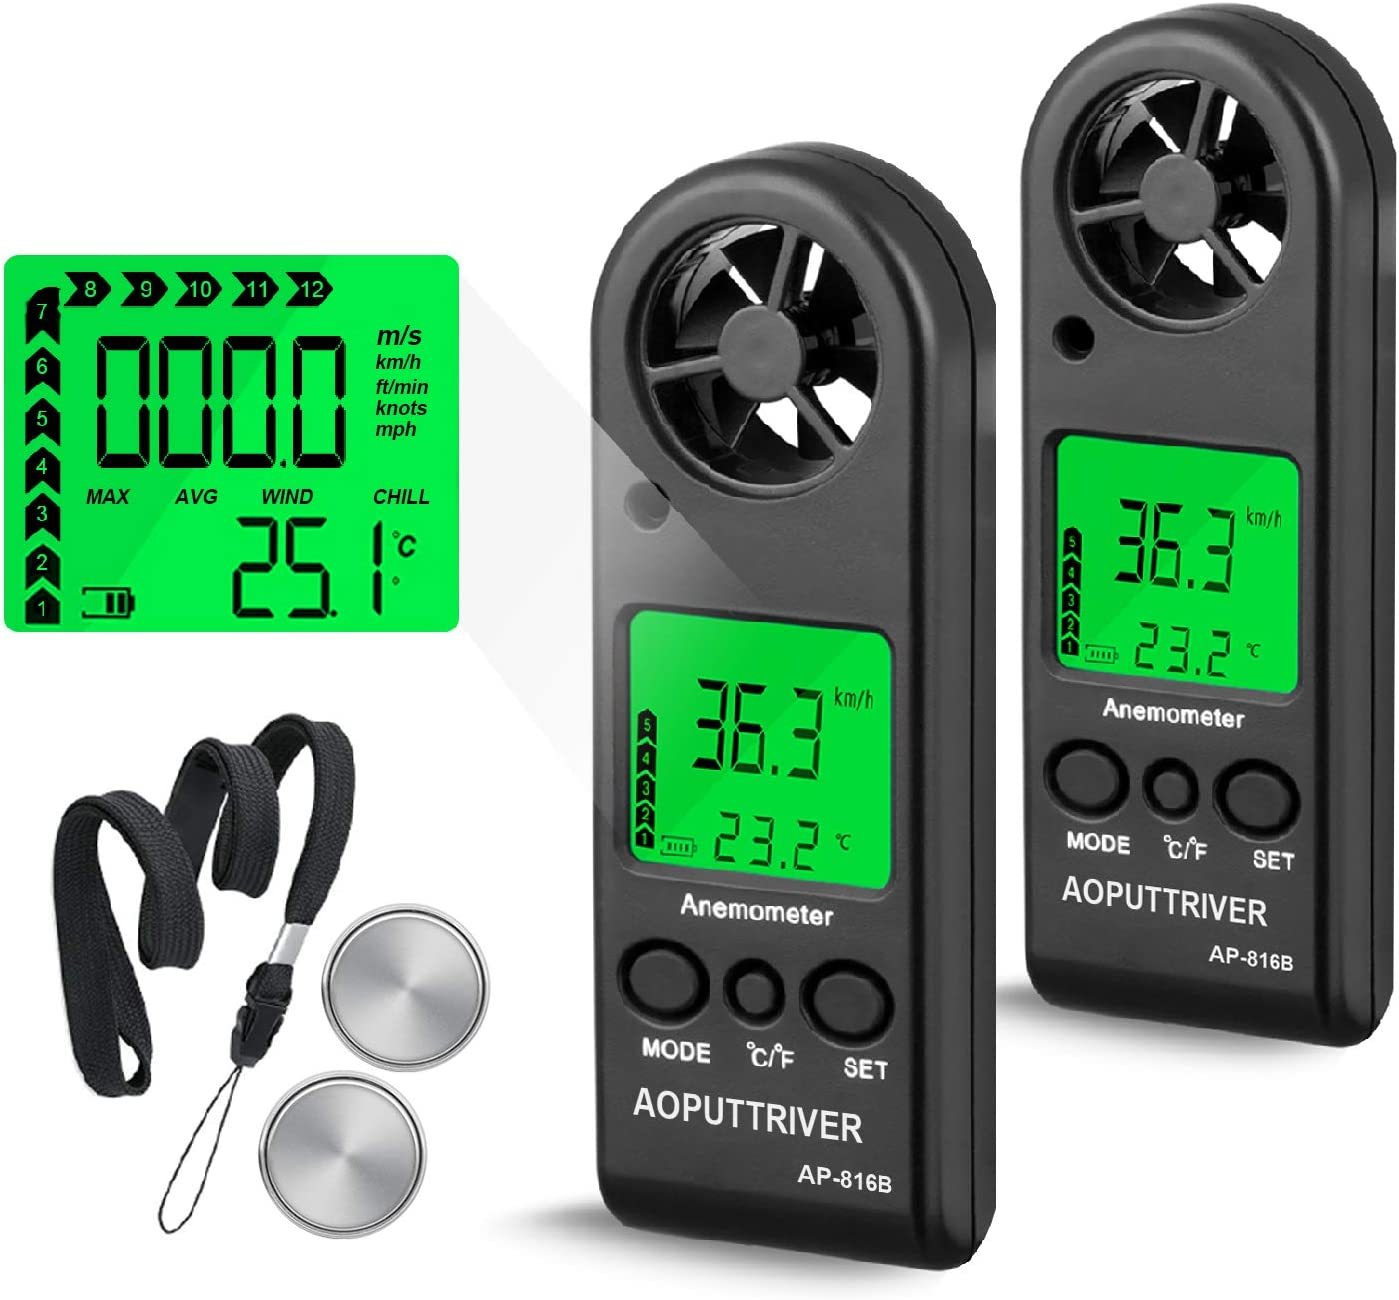 Portable Anemometer Handheld Wind Speed Meter for Measuring Wind Speed,Temperature and Max/Average/Current, High Precision, Measuring for Windsurfing Sailing Fishing Outdoor Activities-AP-816B(2Pack)